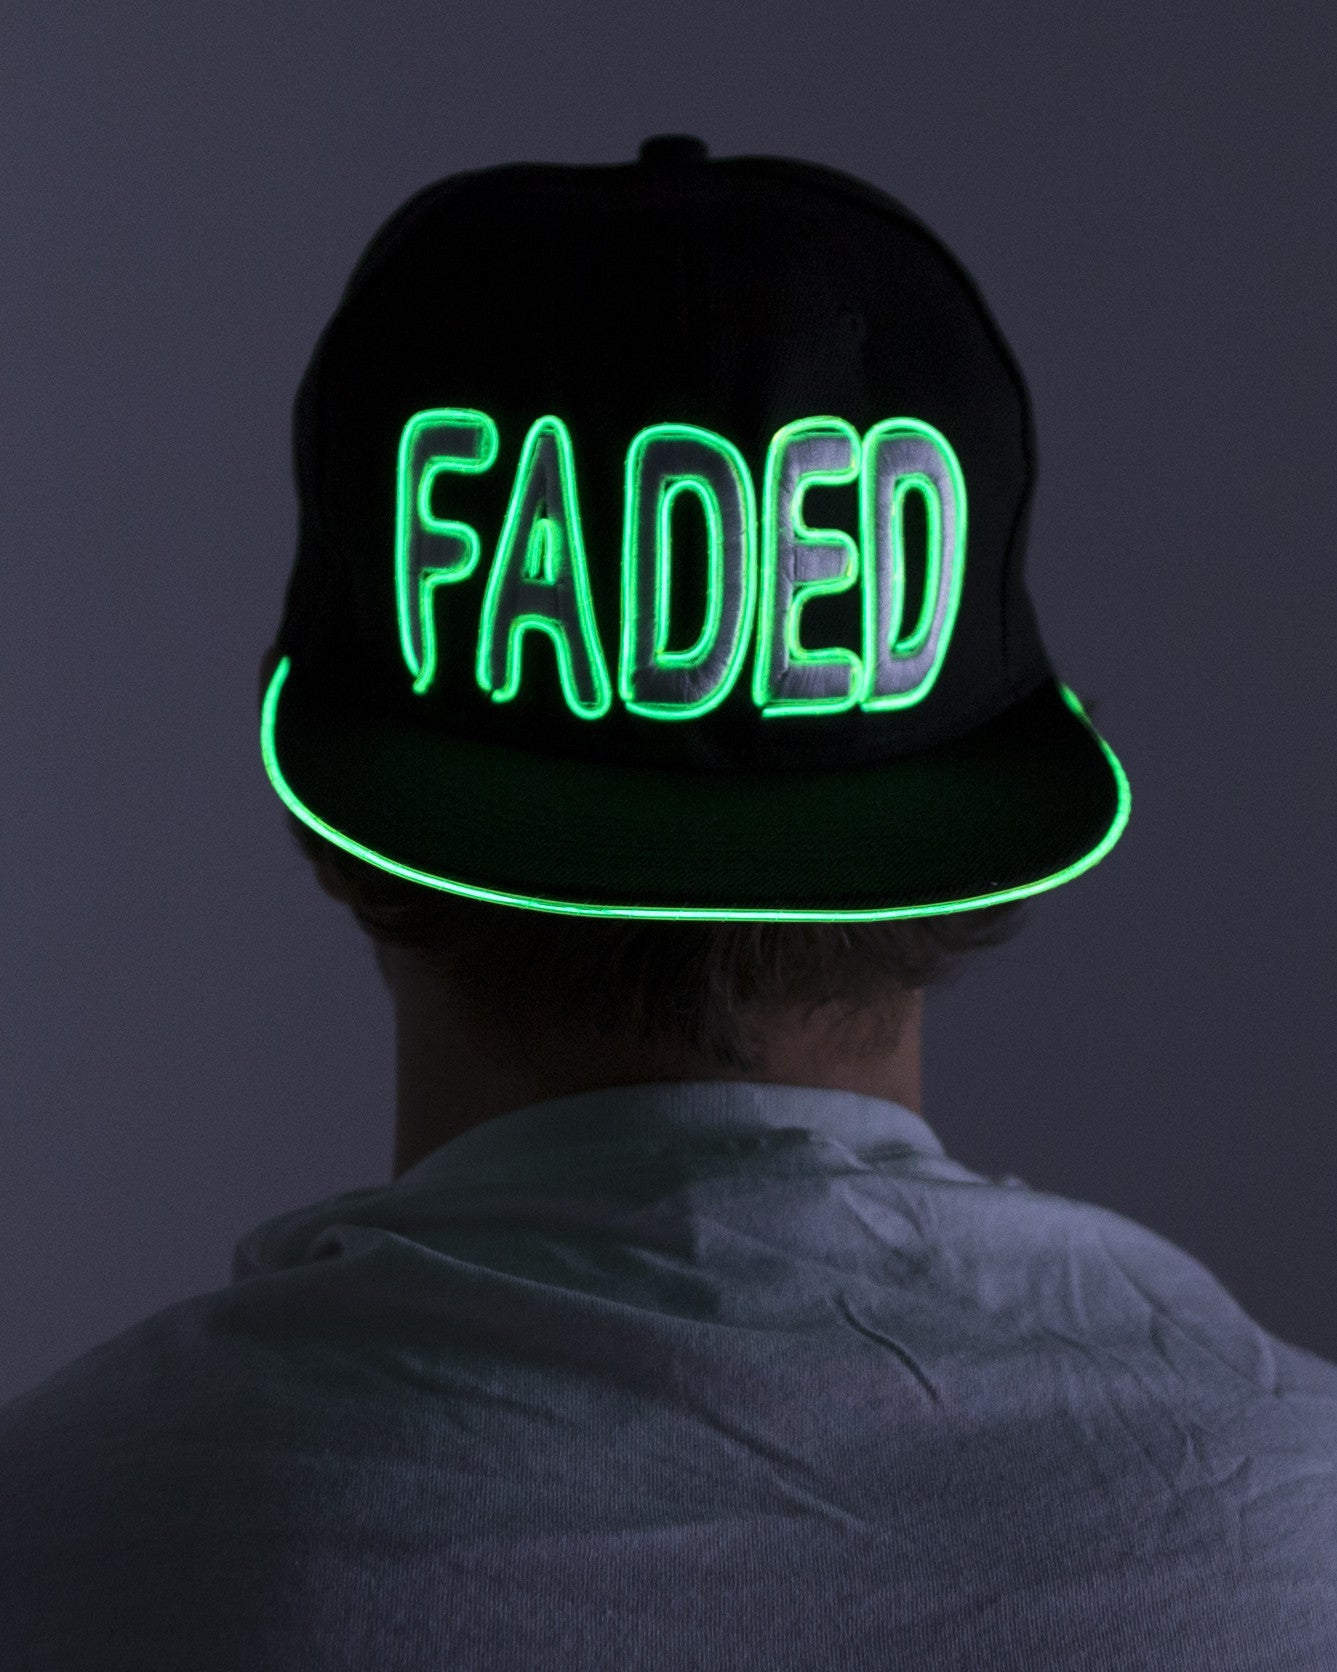 Light Up Hat - Faded - Electric Styles | World's Number 1 Light Up Shoe Store - {product_type}} - Green - 1